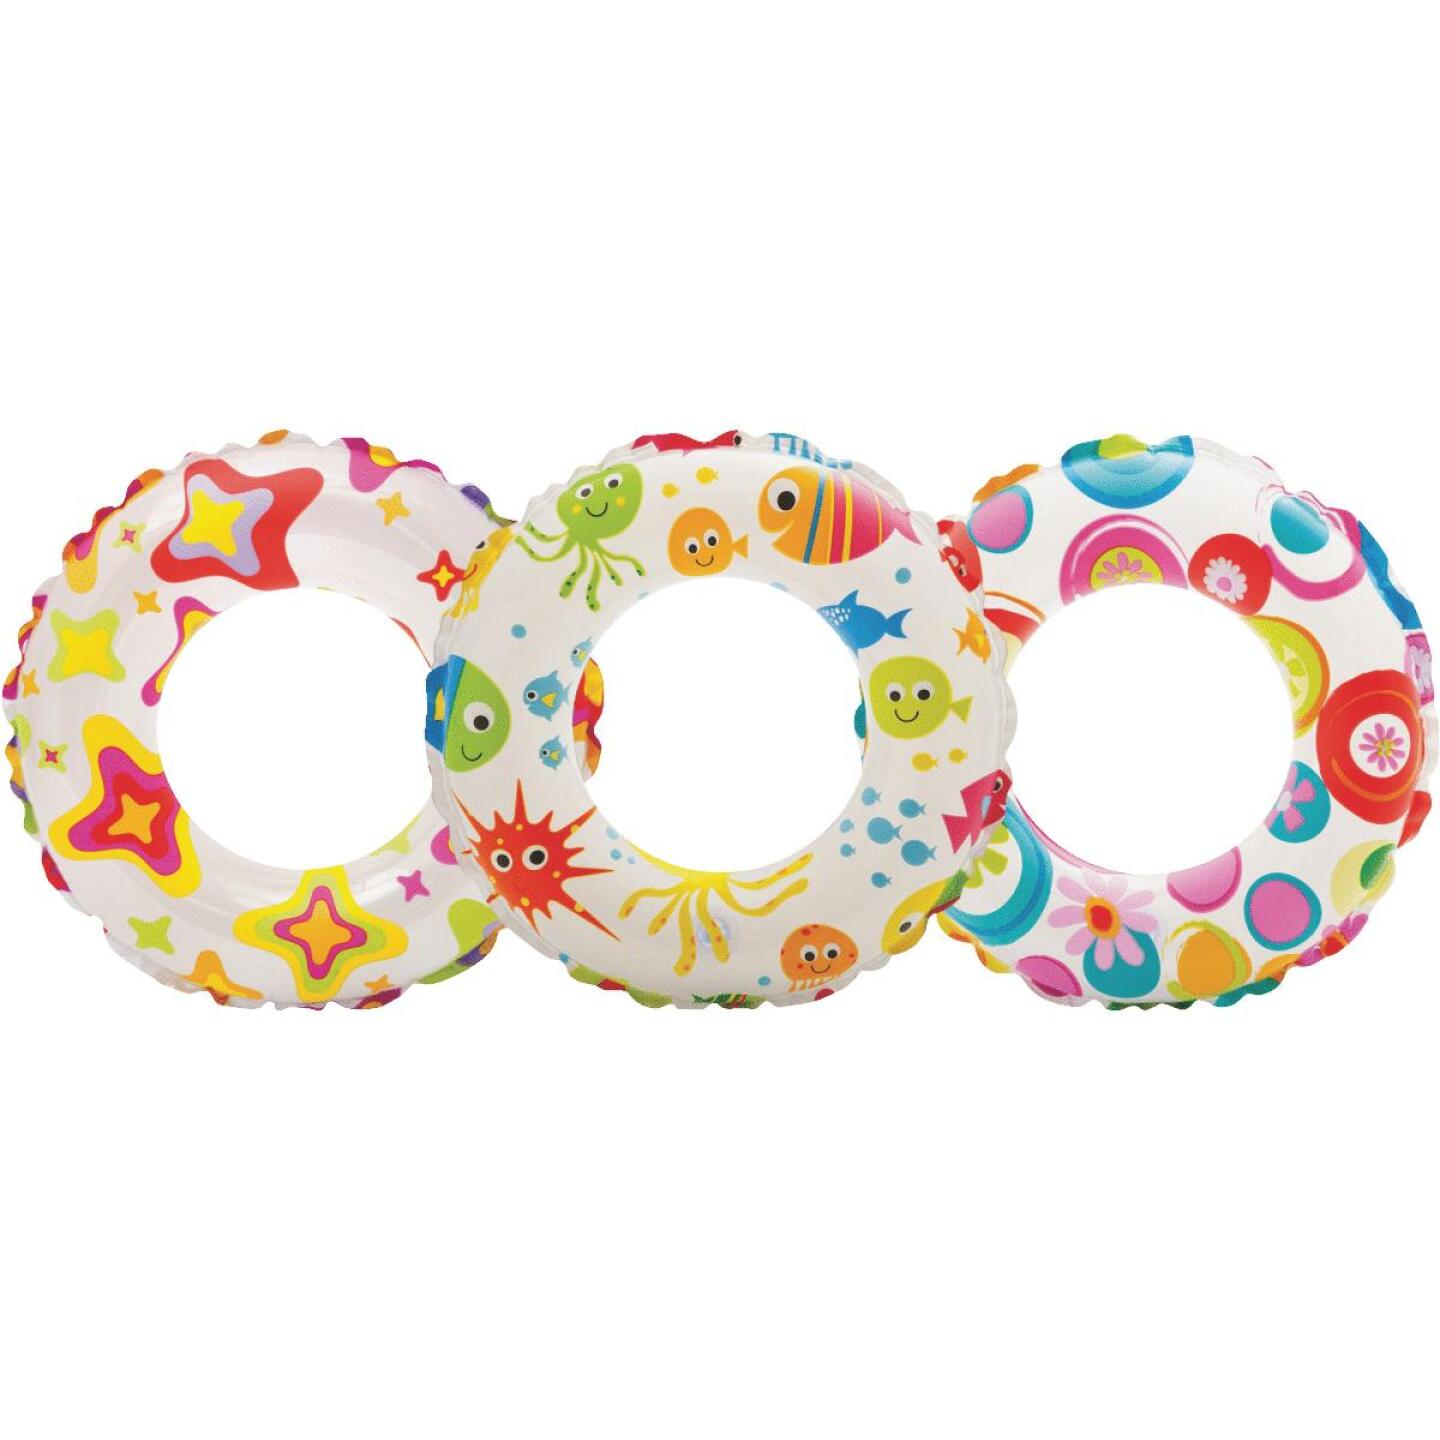 Intex 20 In. Lively Print Pool Tube Float Image 1